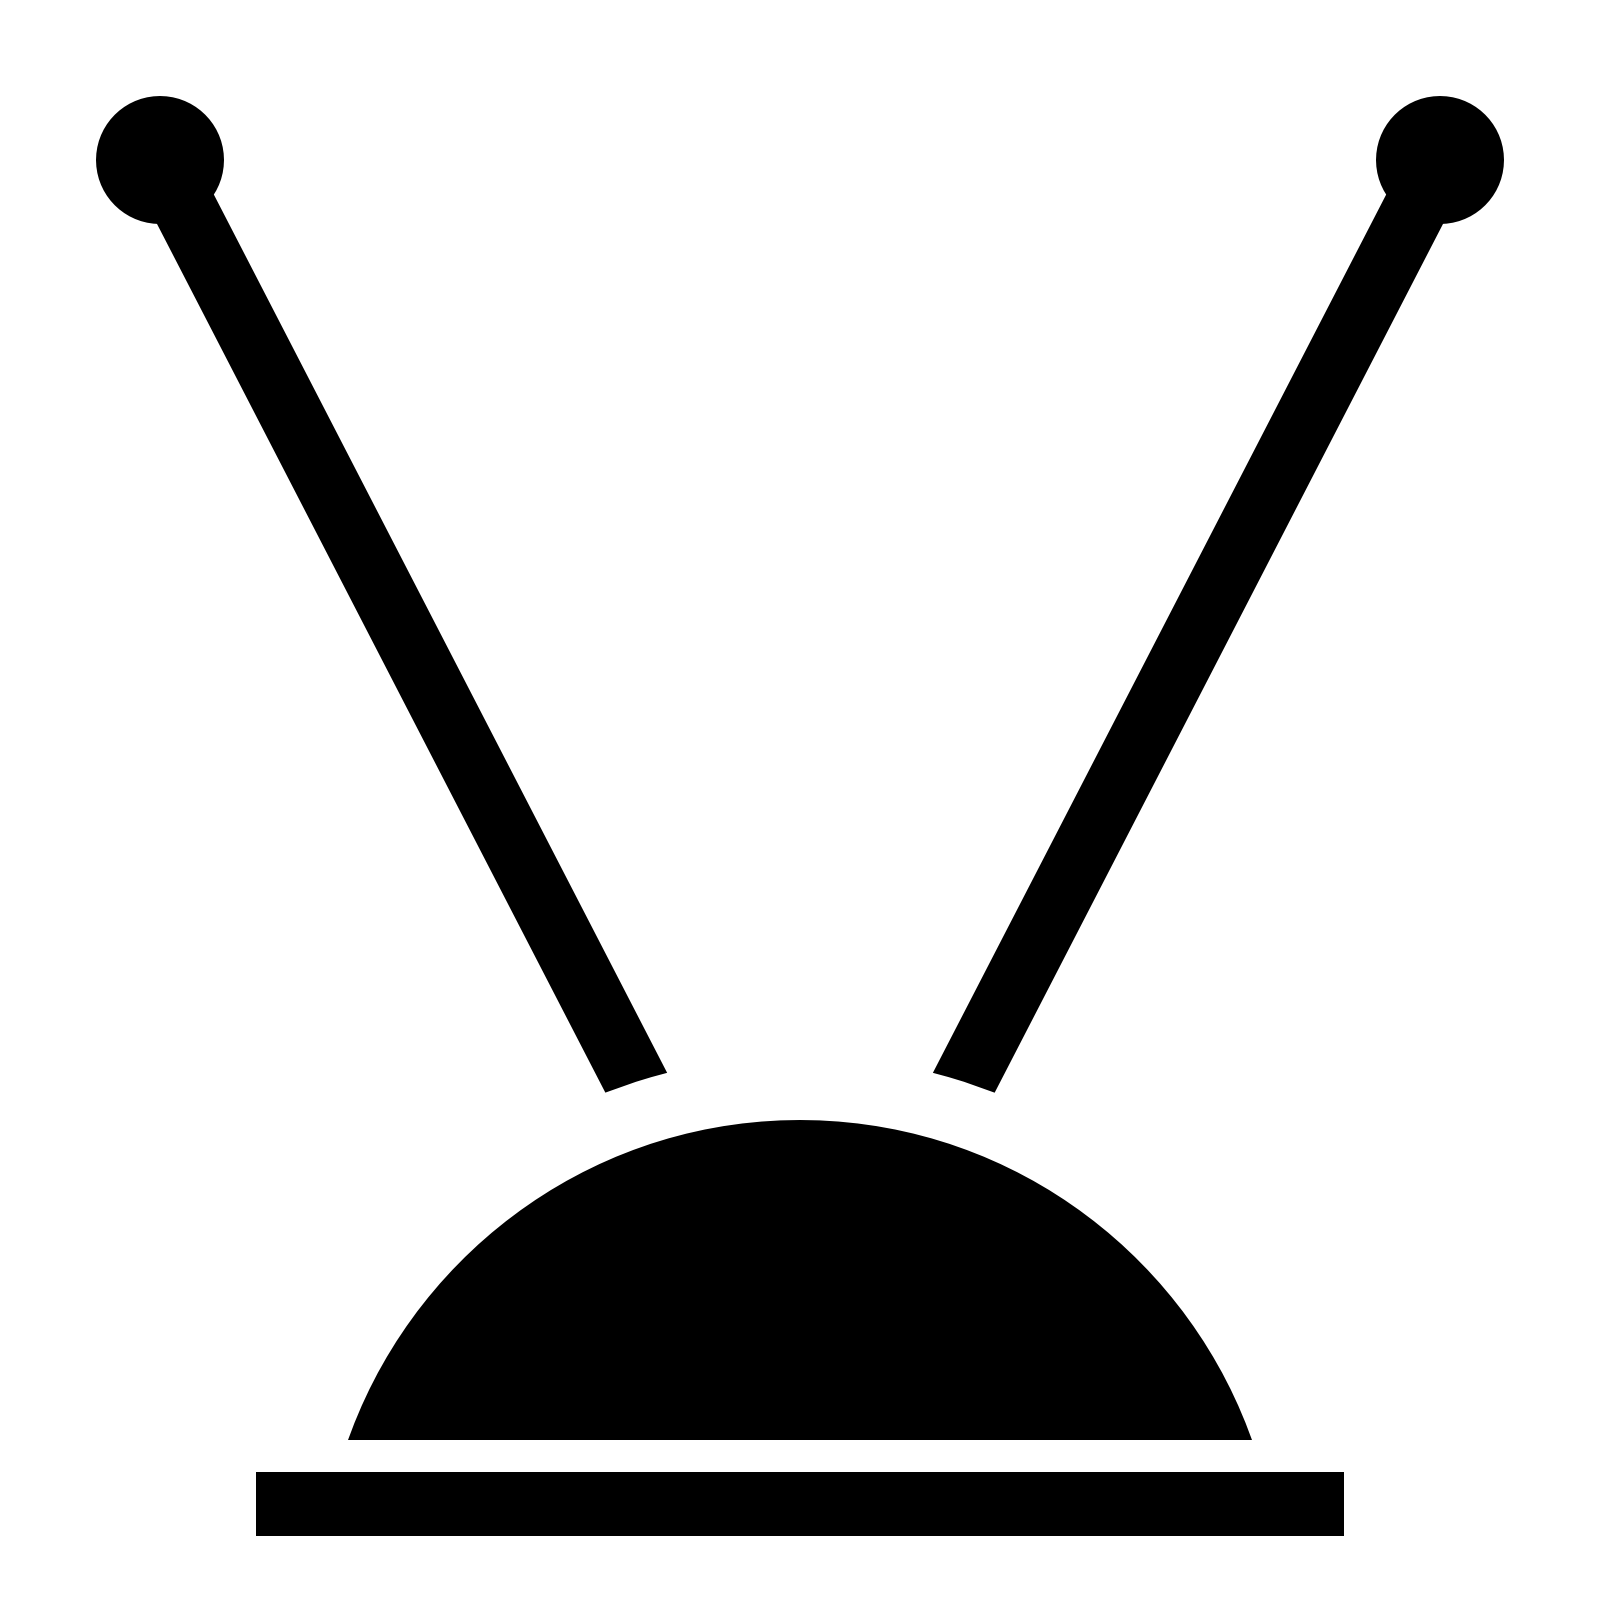 Pencil and in color. Clipart tv antenna clipart